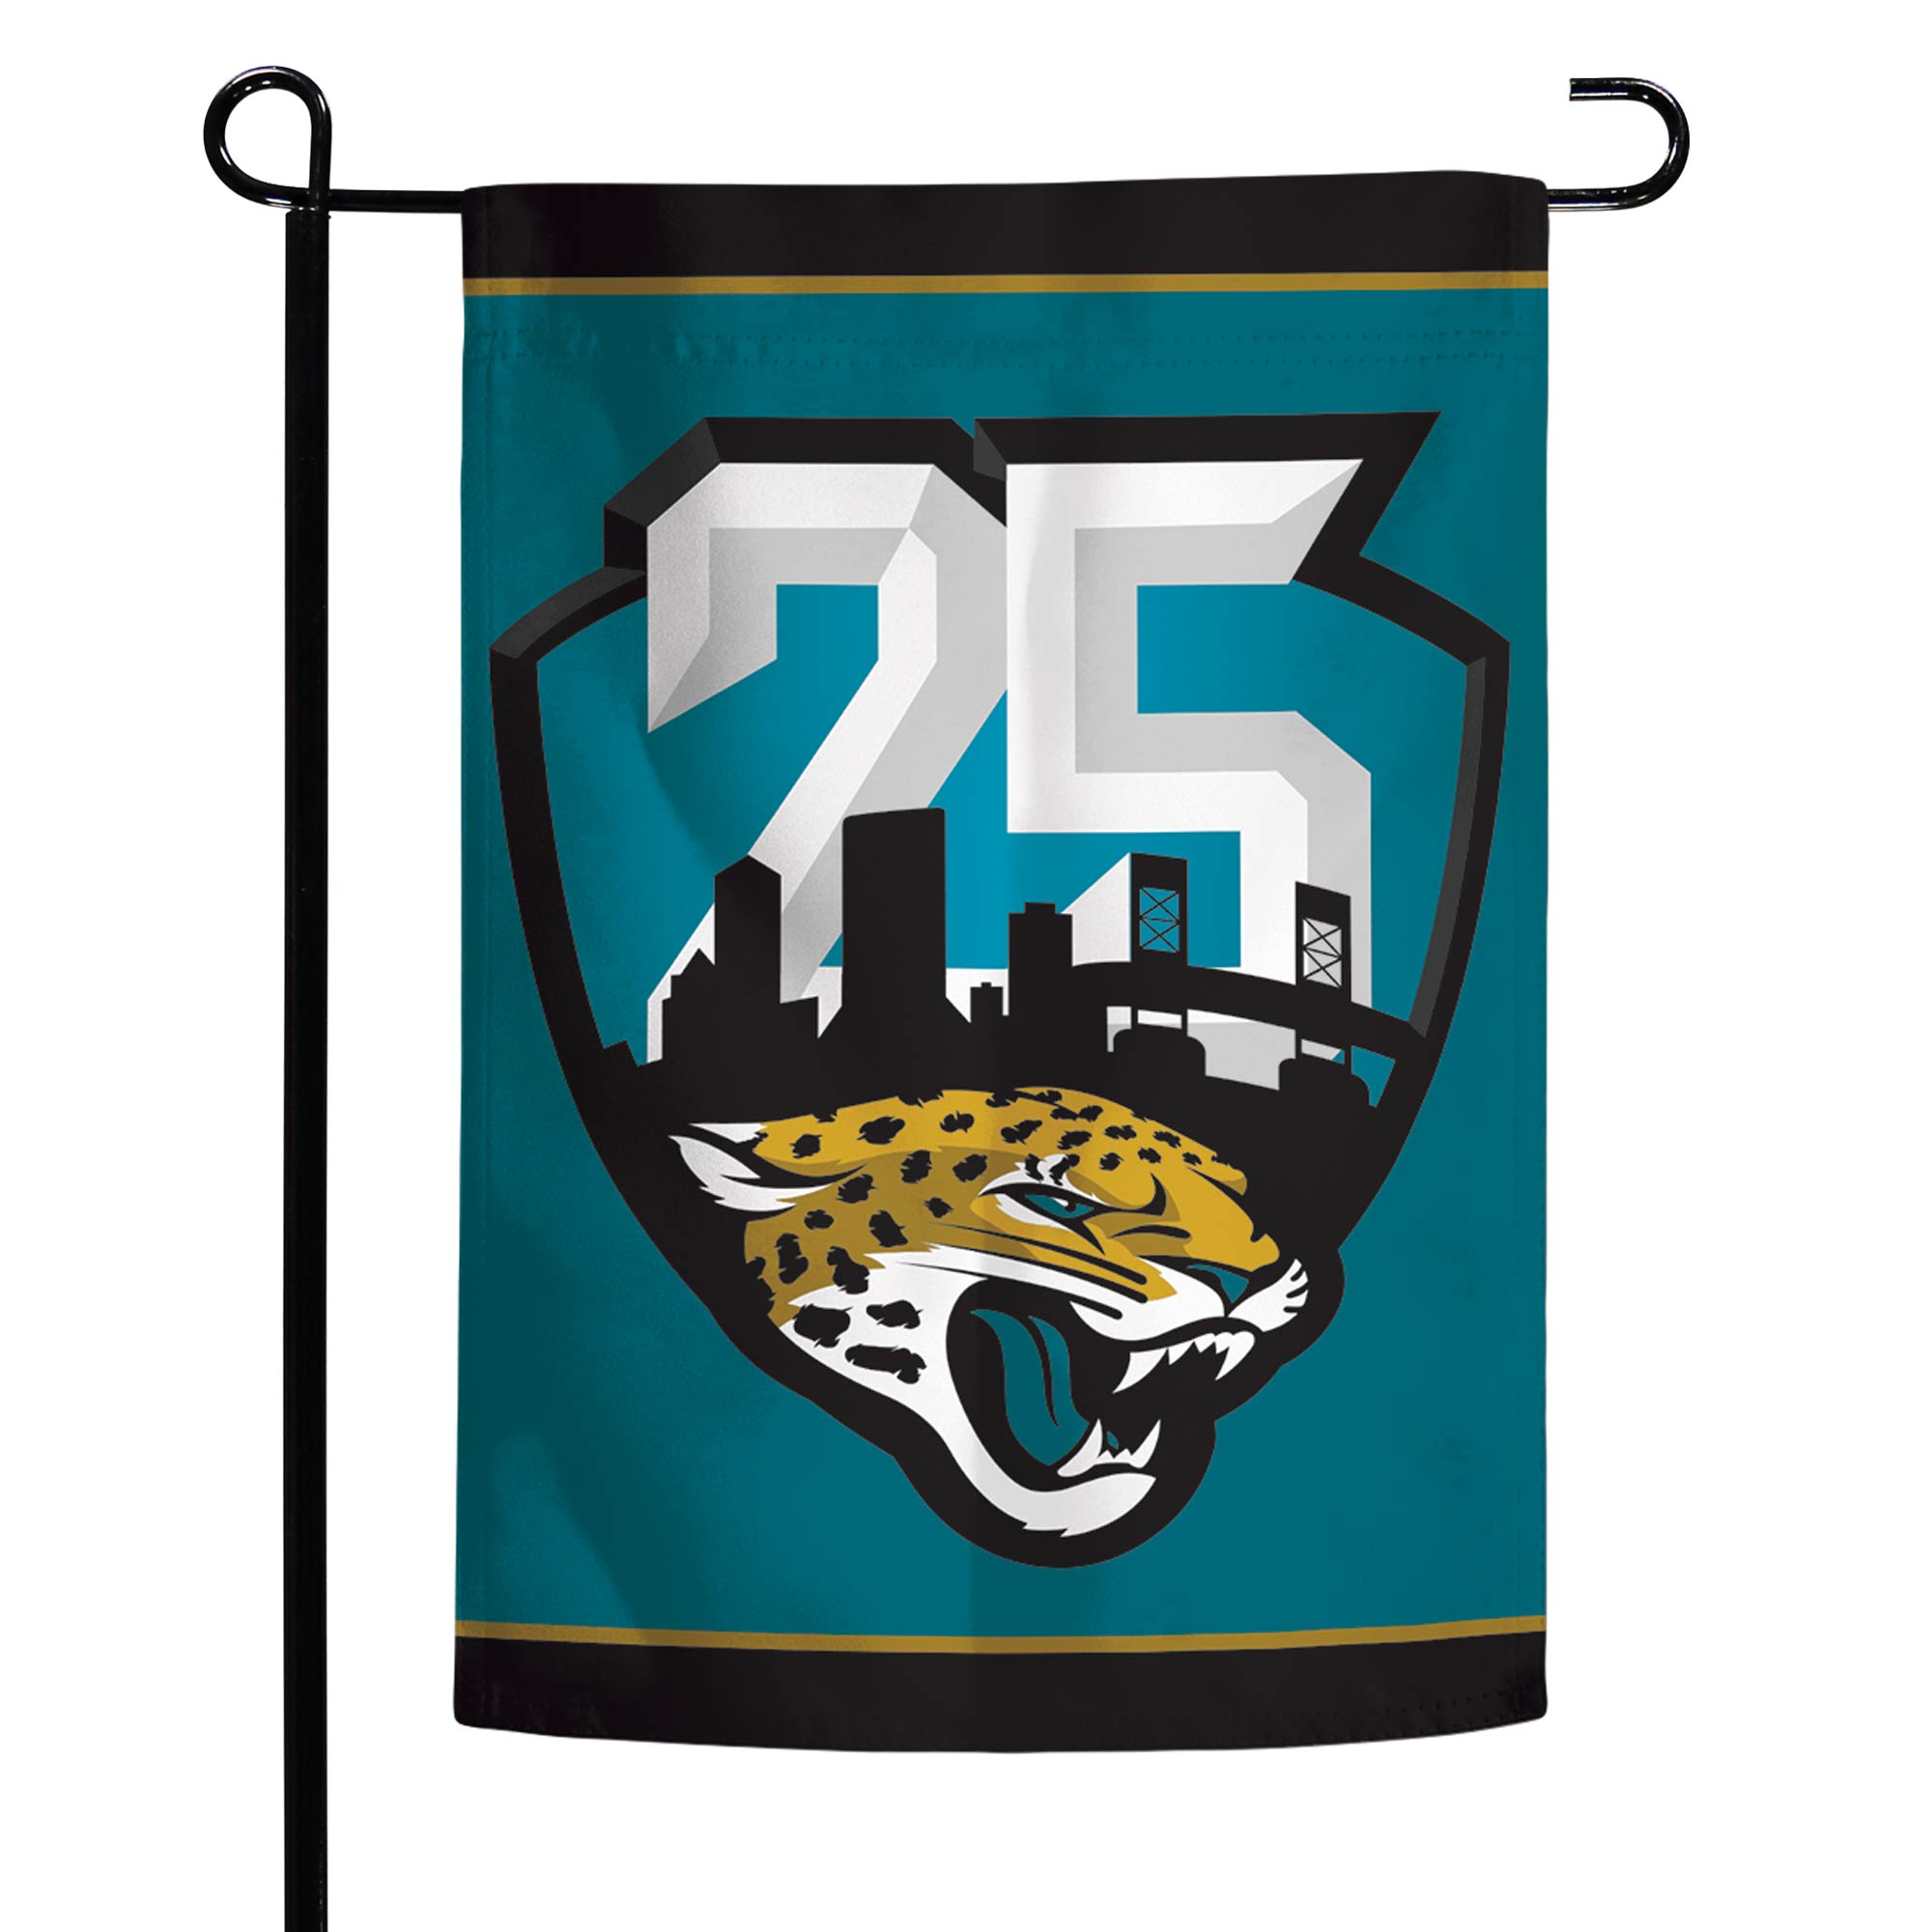 "Jacksonville Jaguars WinCraft 12"" x 18"" 25th Season Double-Sided Garden Flag"